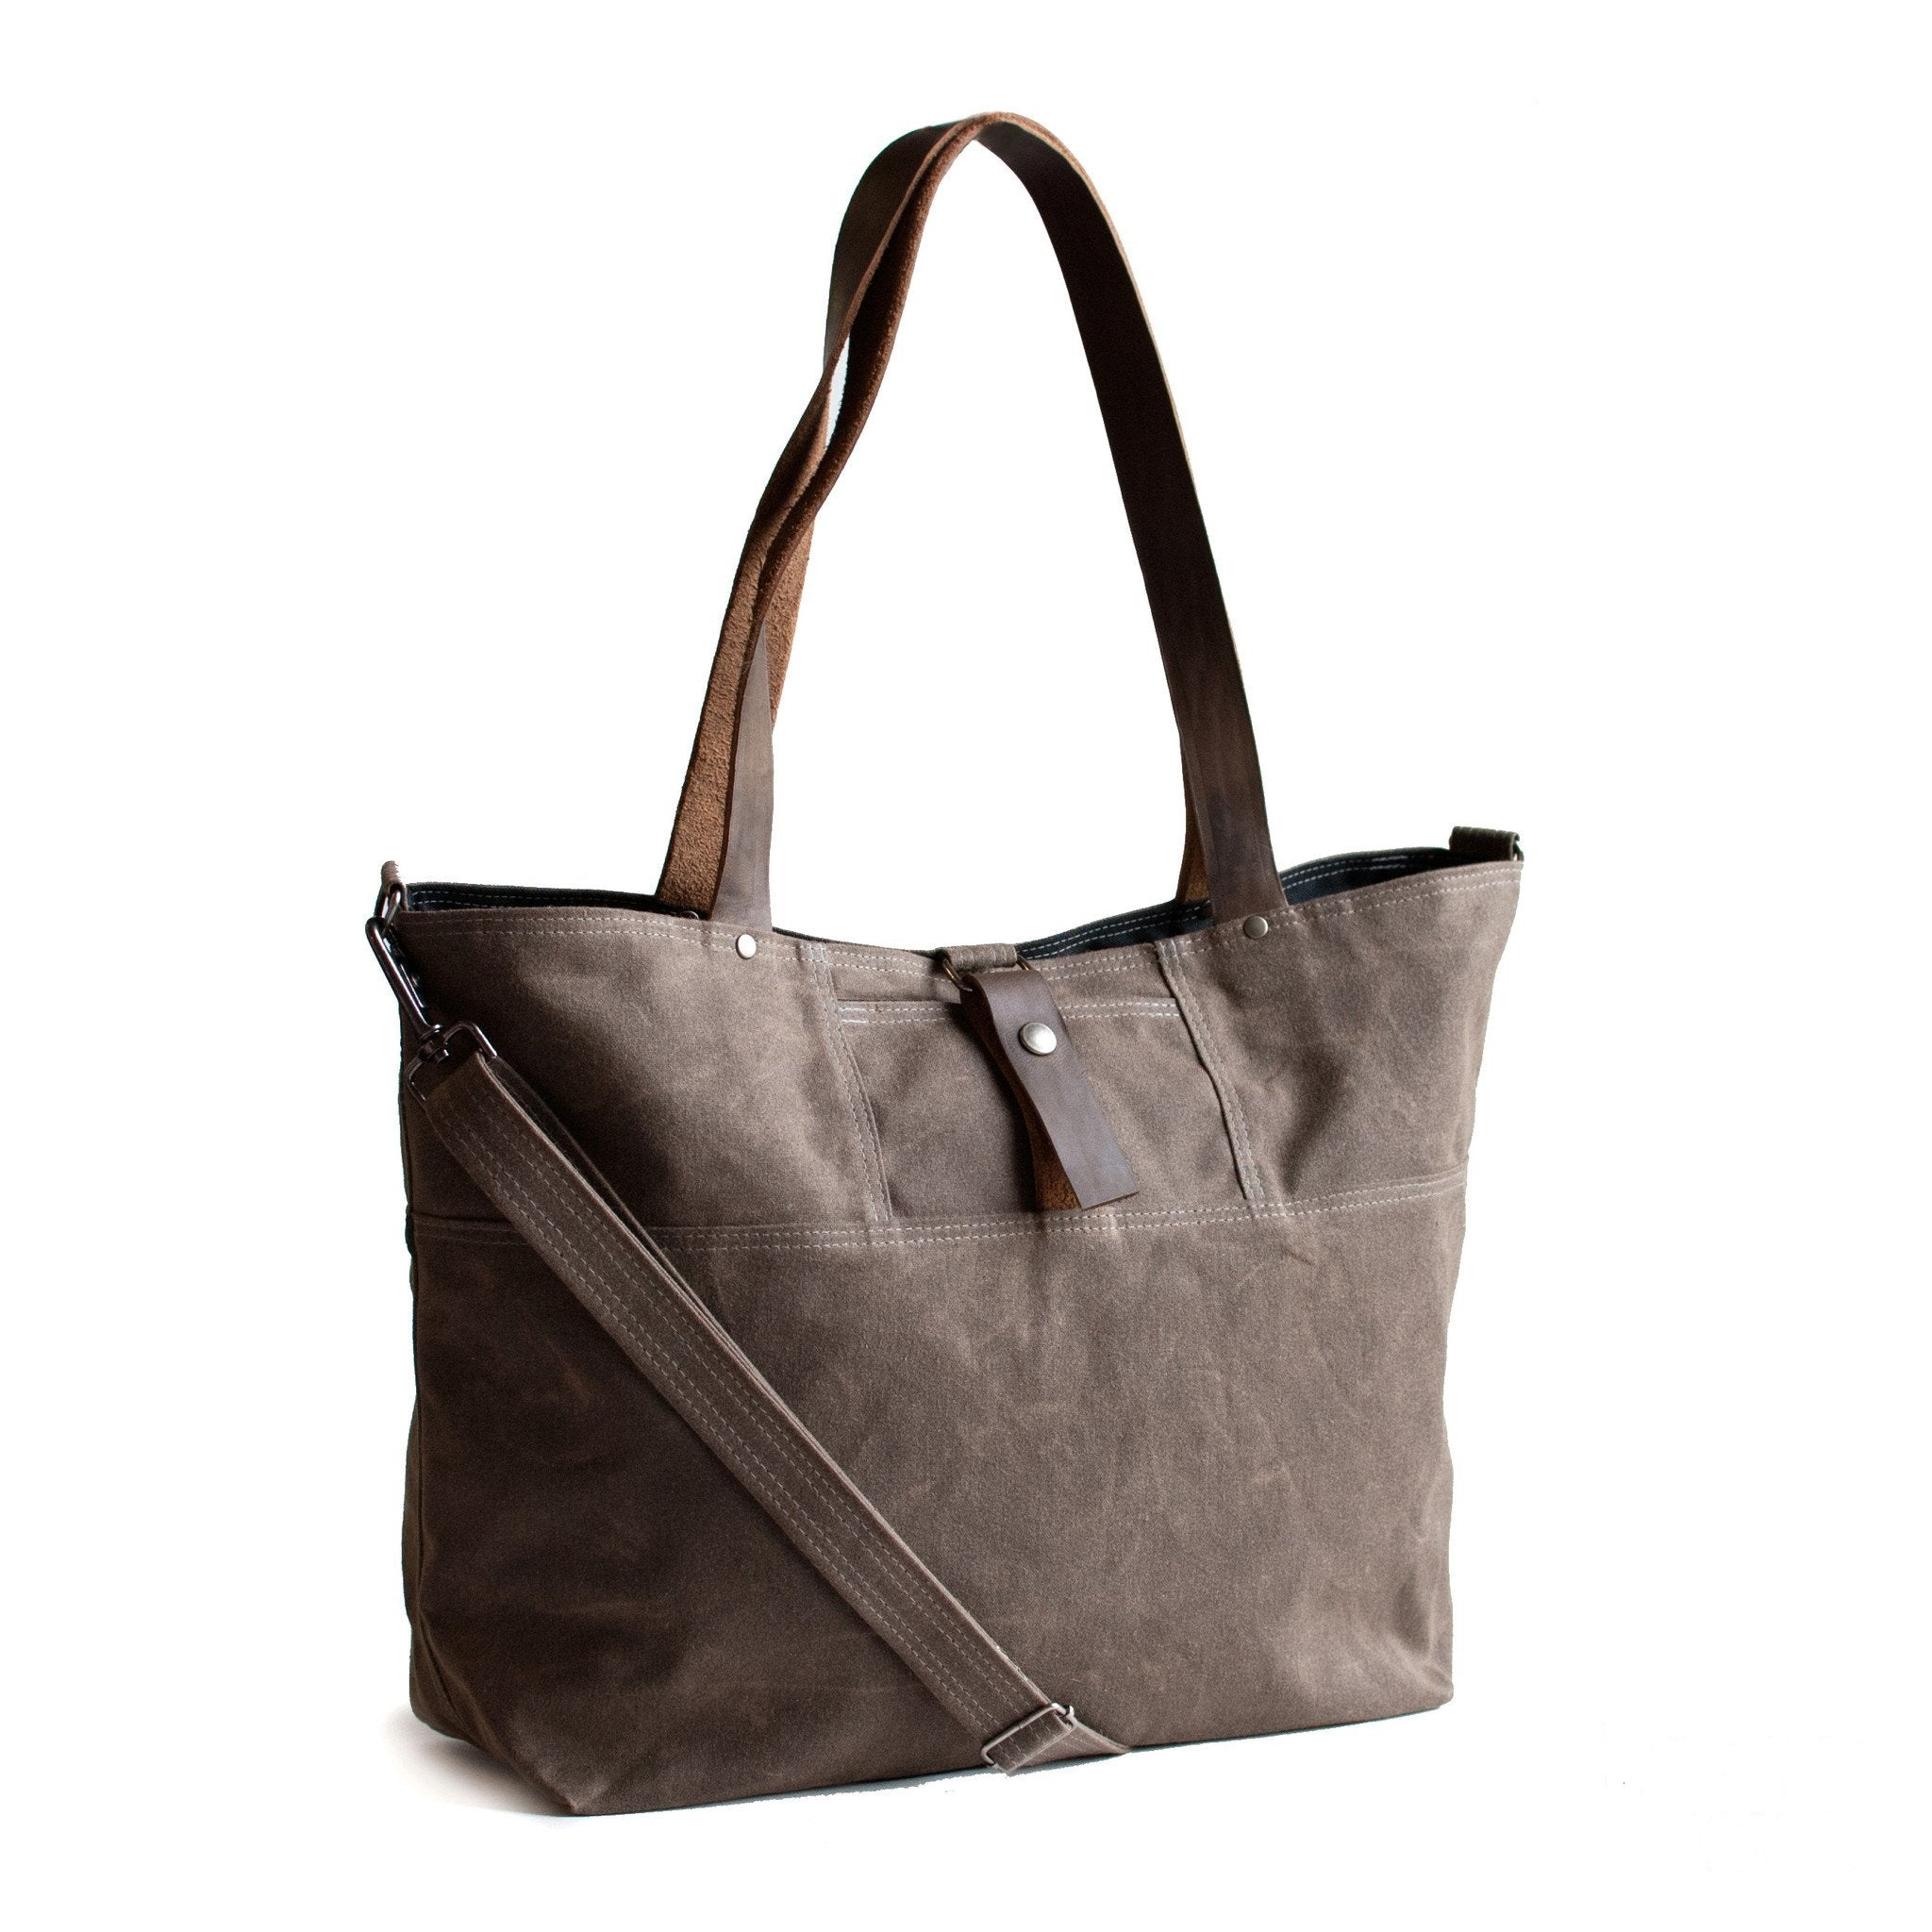 Moop Bags The Carrier Tote Brown